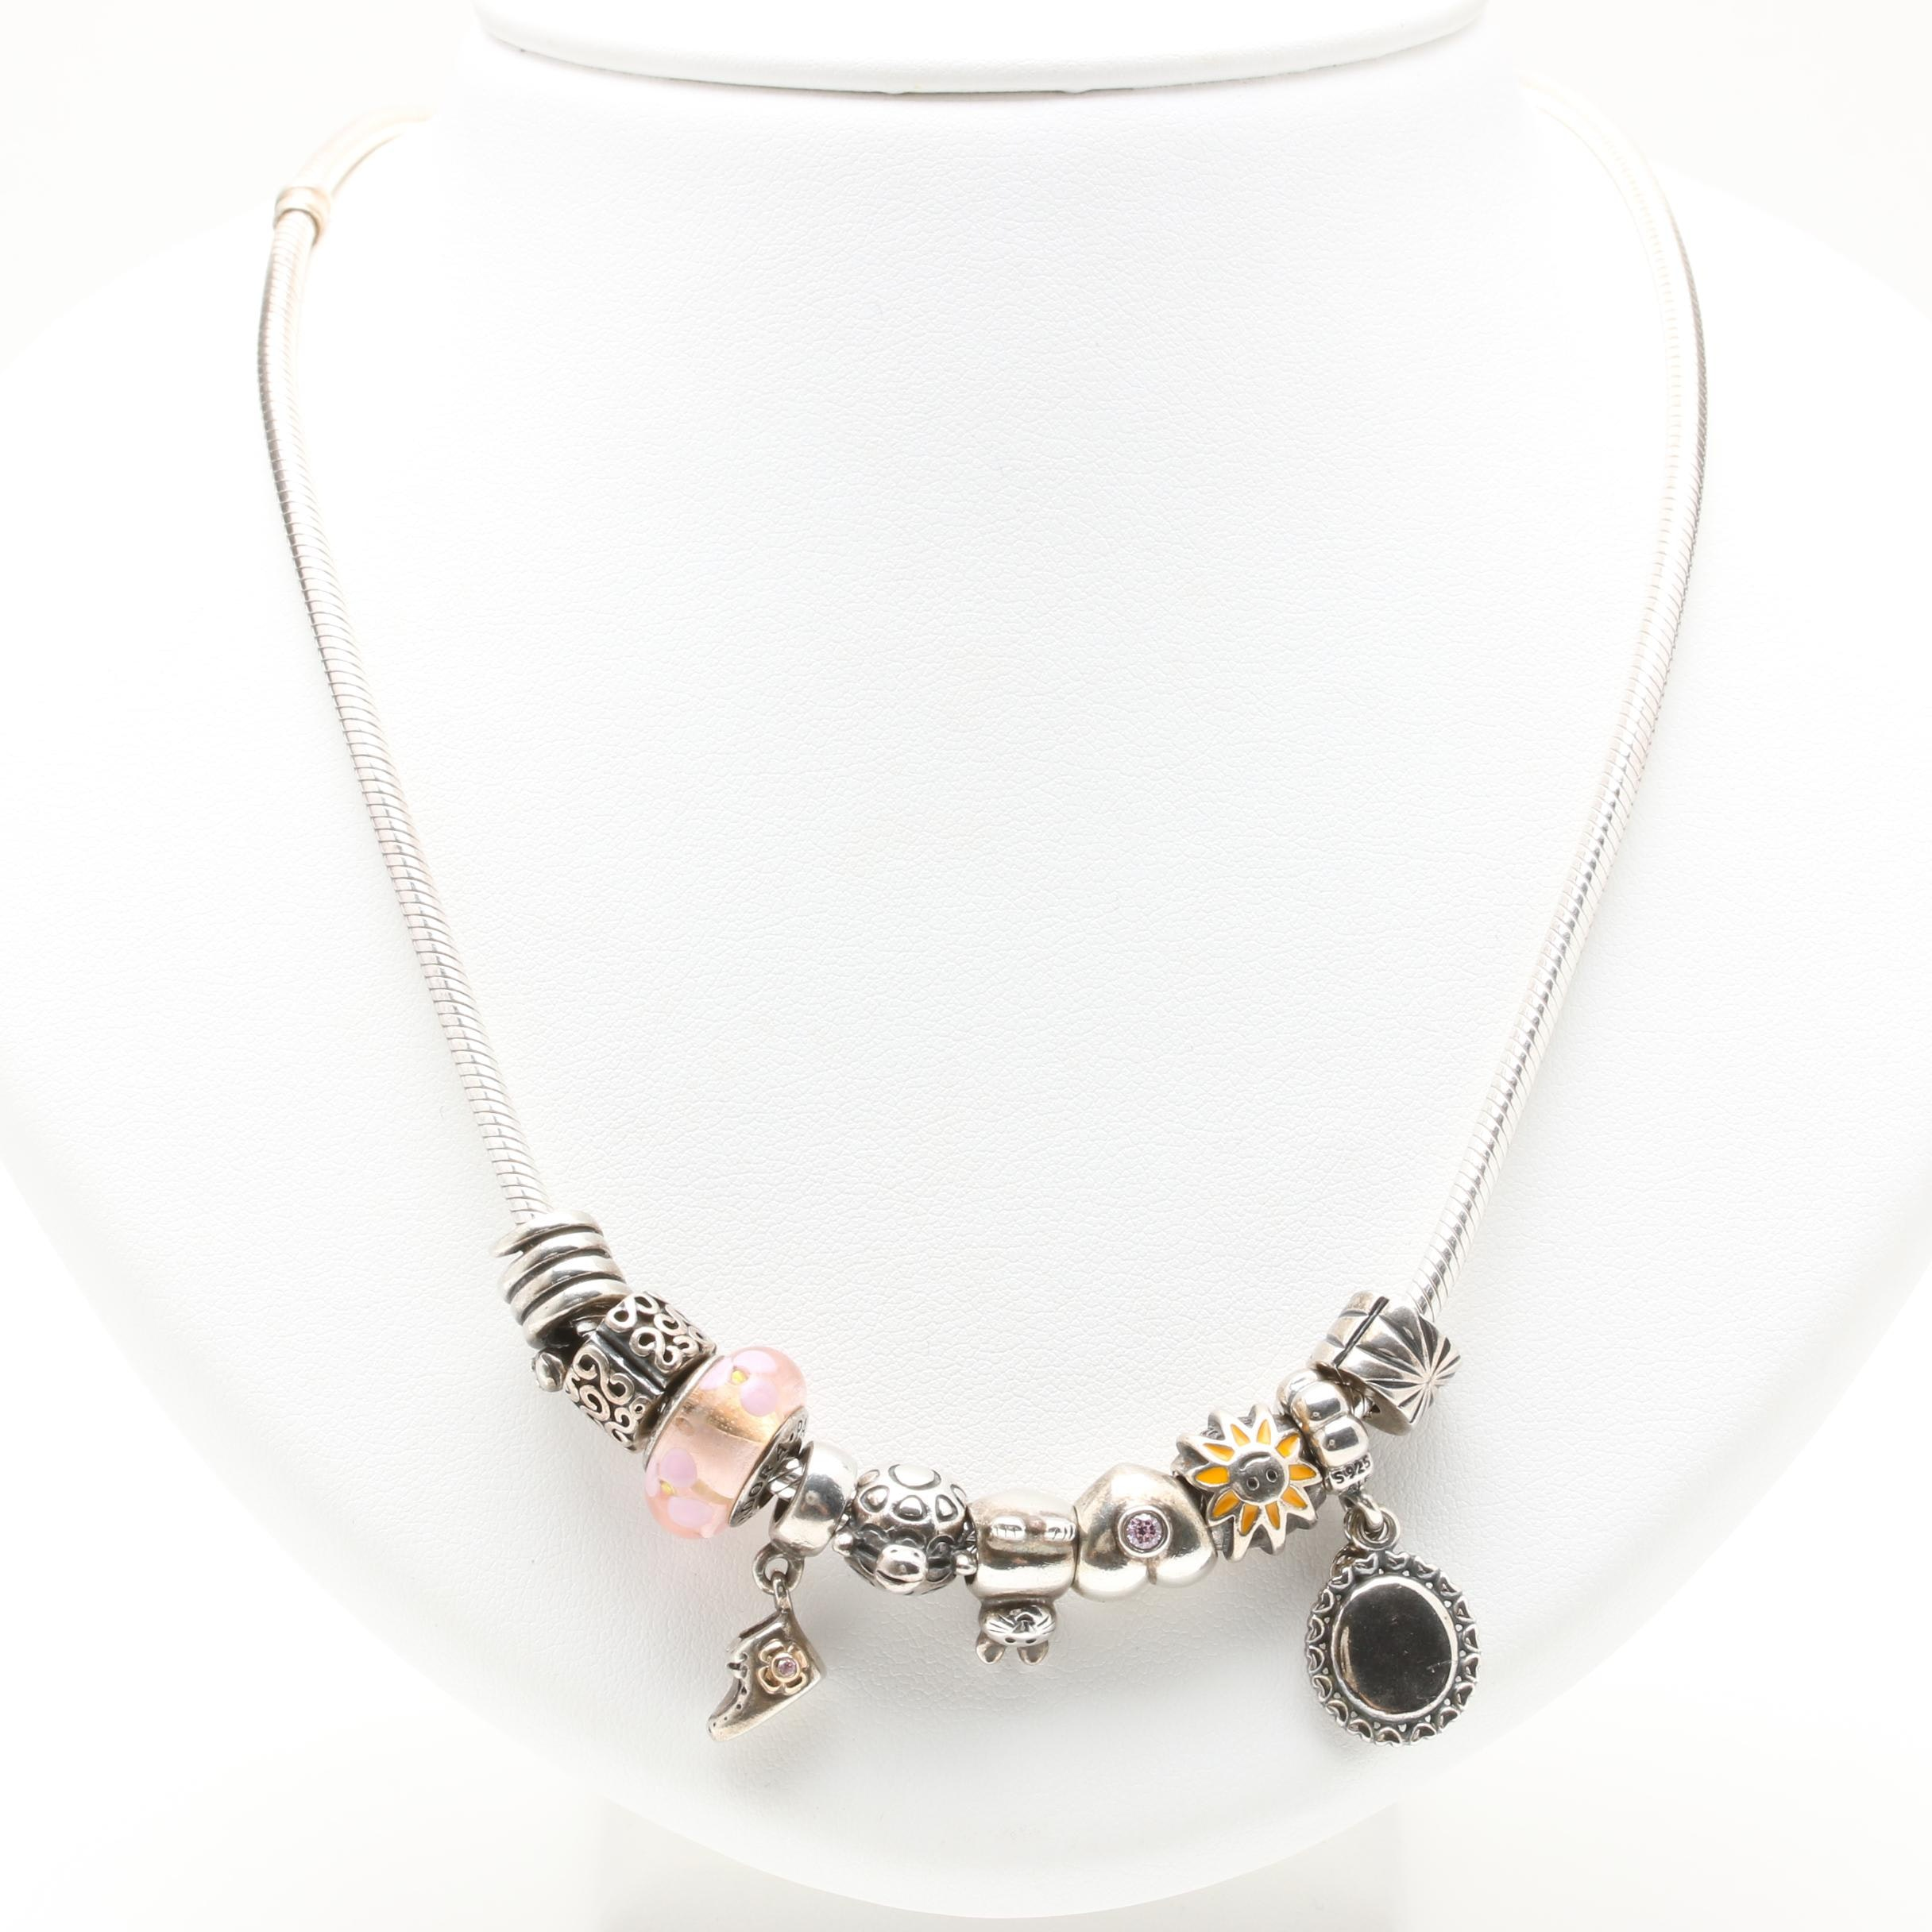 Pandora Sterling Silver Charm Necklace Including Lampwork Glass